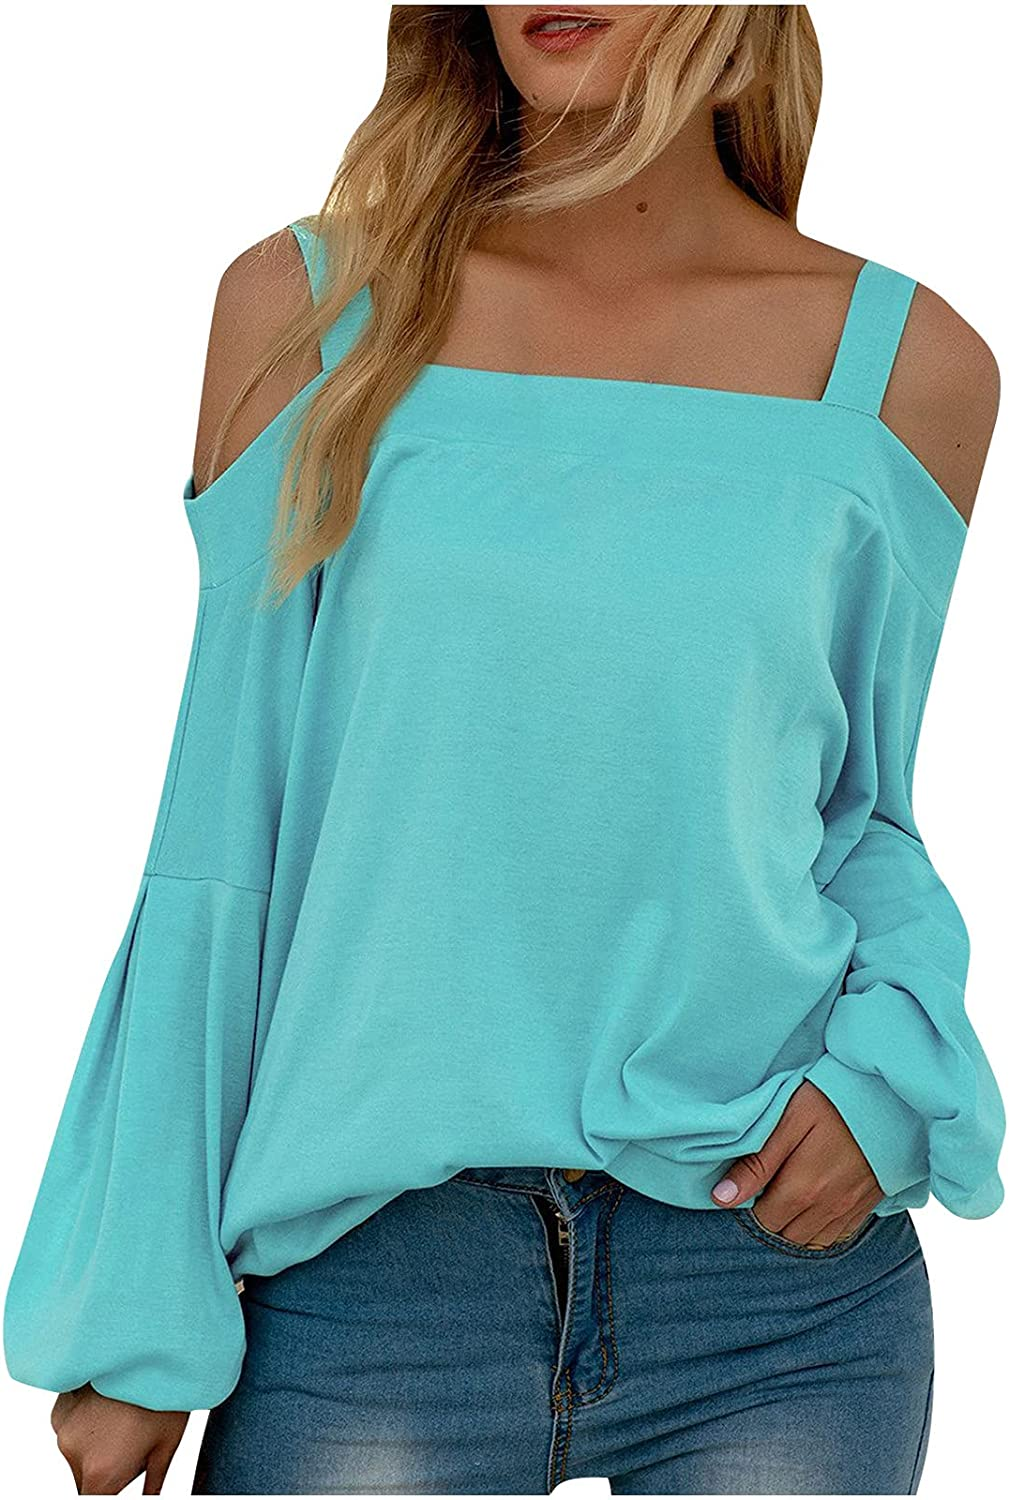 Olivcker Women Cold Shoulder Tops Strapless Sexy Sling Long Sleeve Solid Color Casual Loose Fashion Breathable Blouses